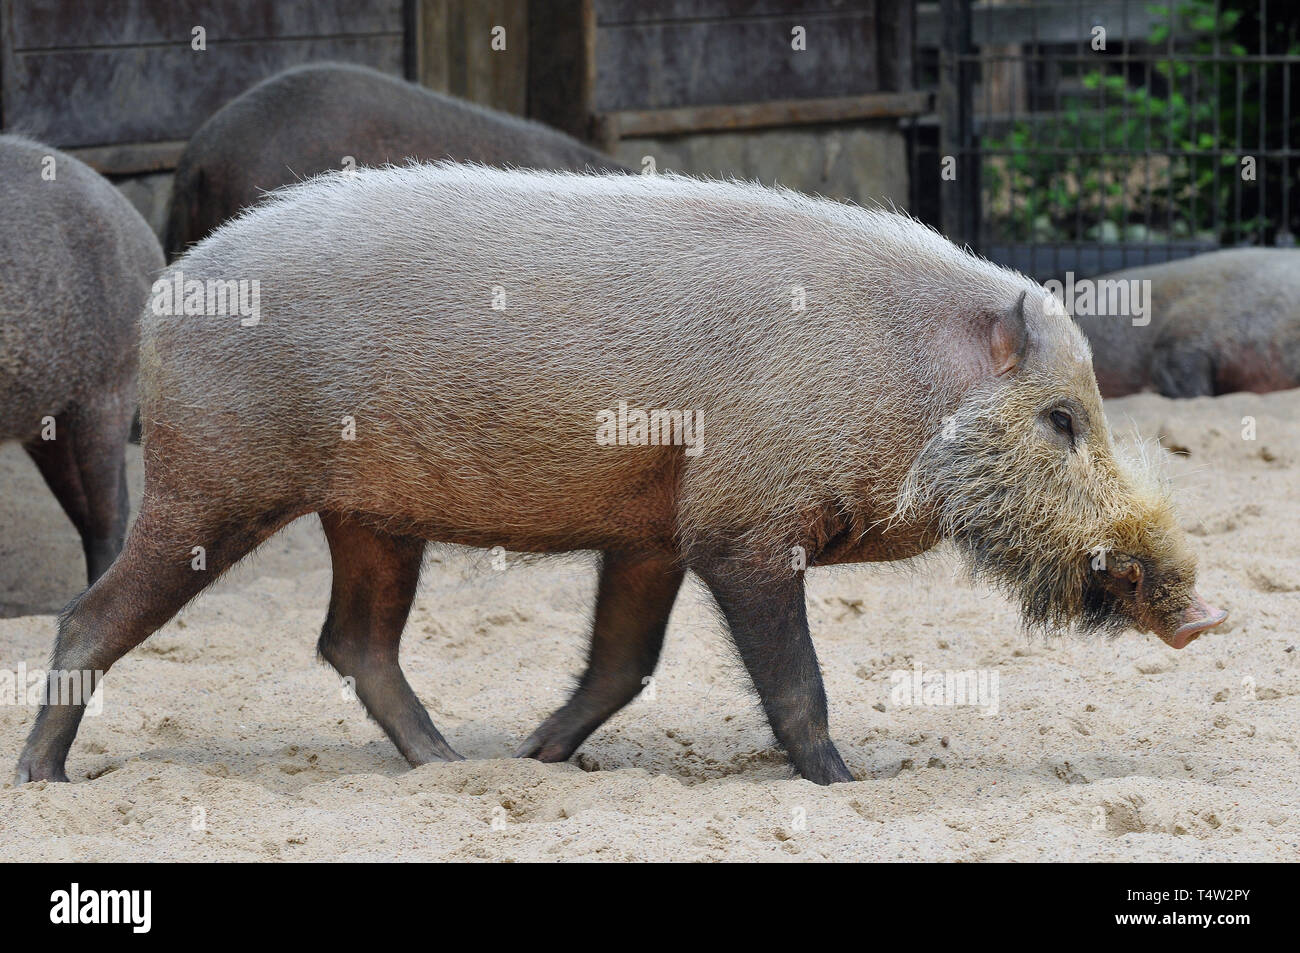 Bornean bearded pig, Bartschwein, Sus barbatus, szakállas disznó Stock Photo